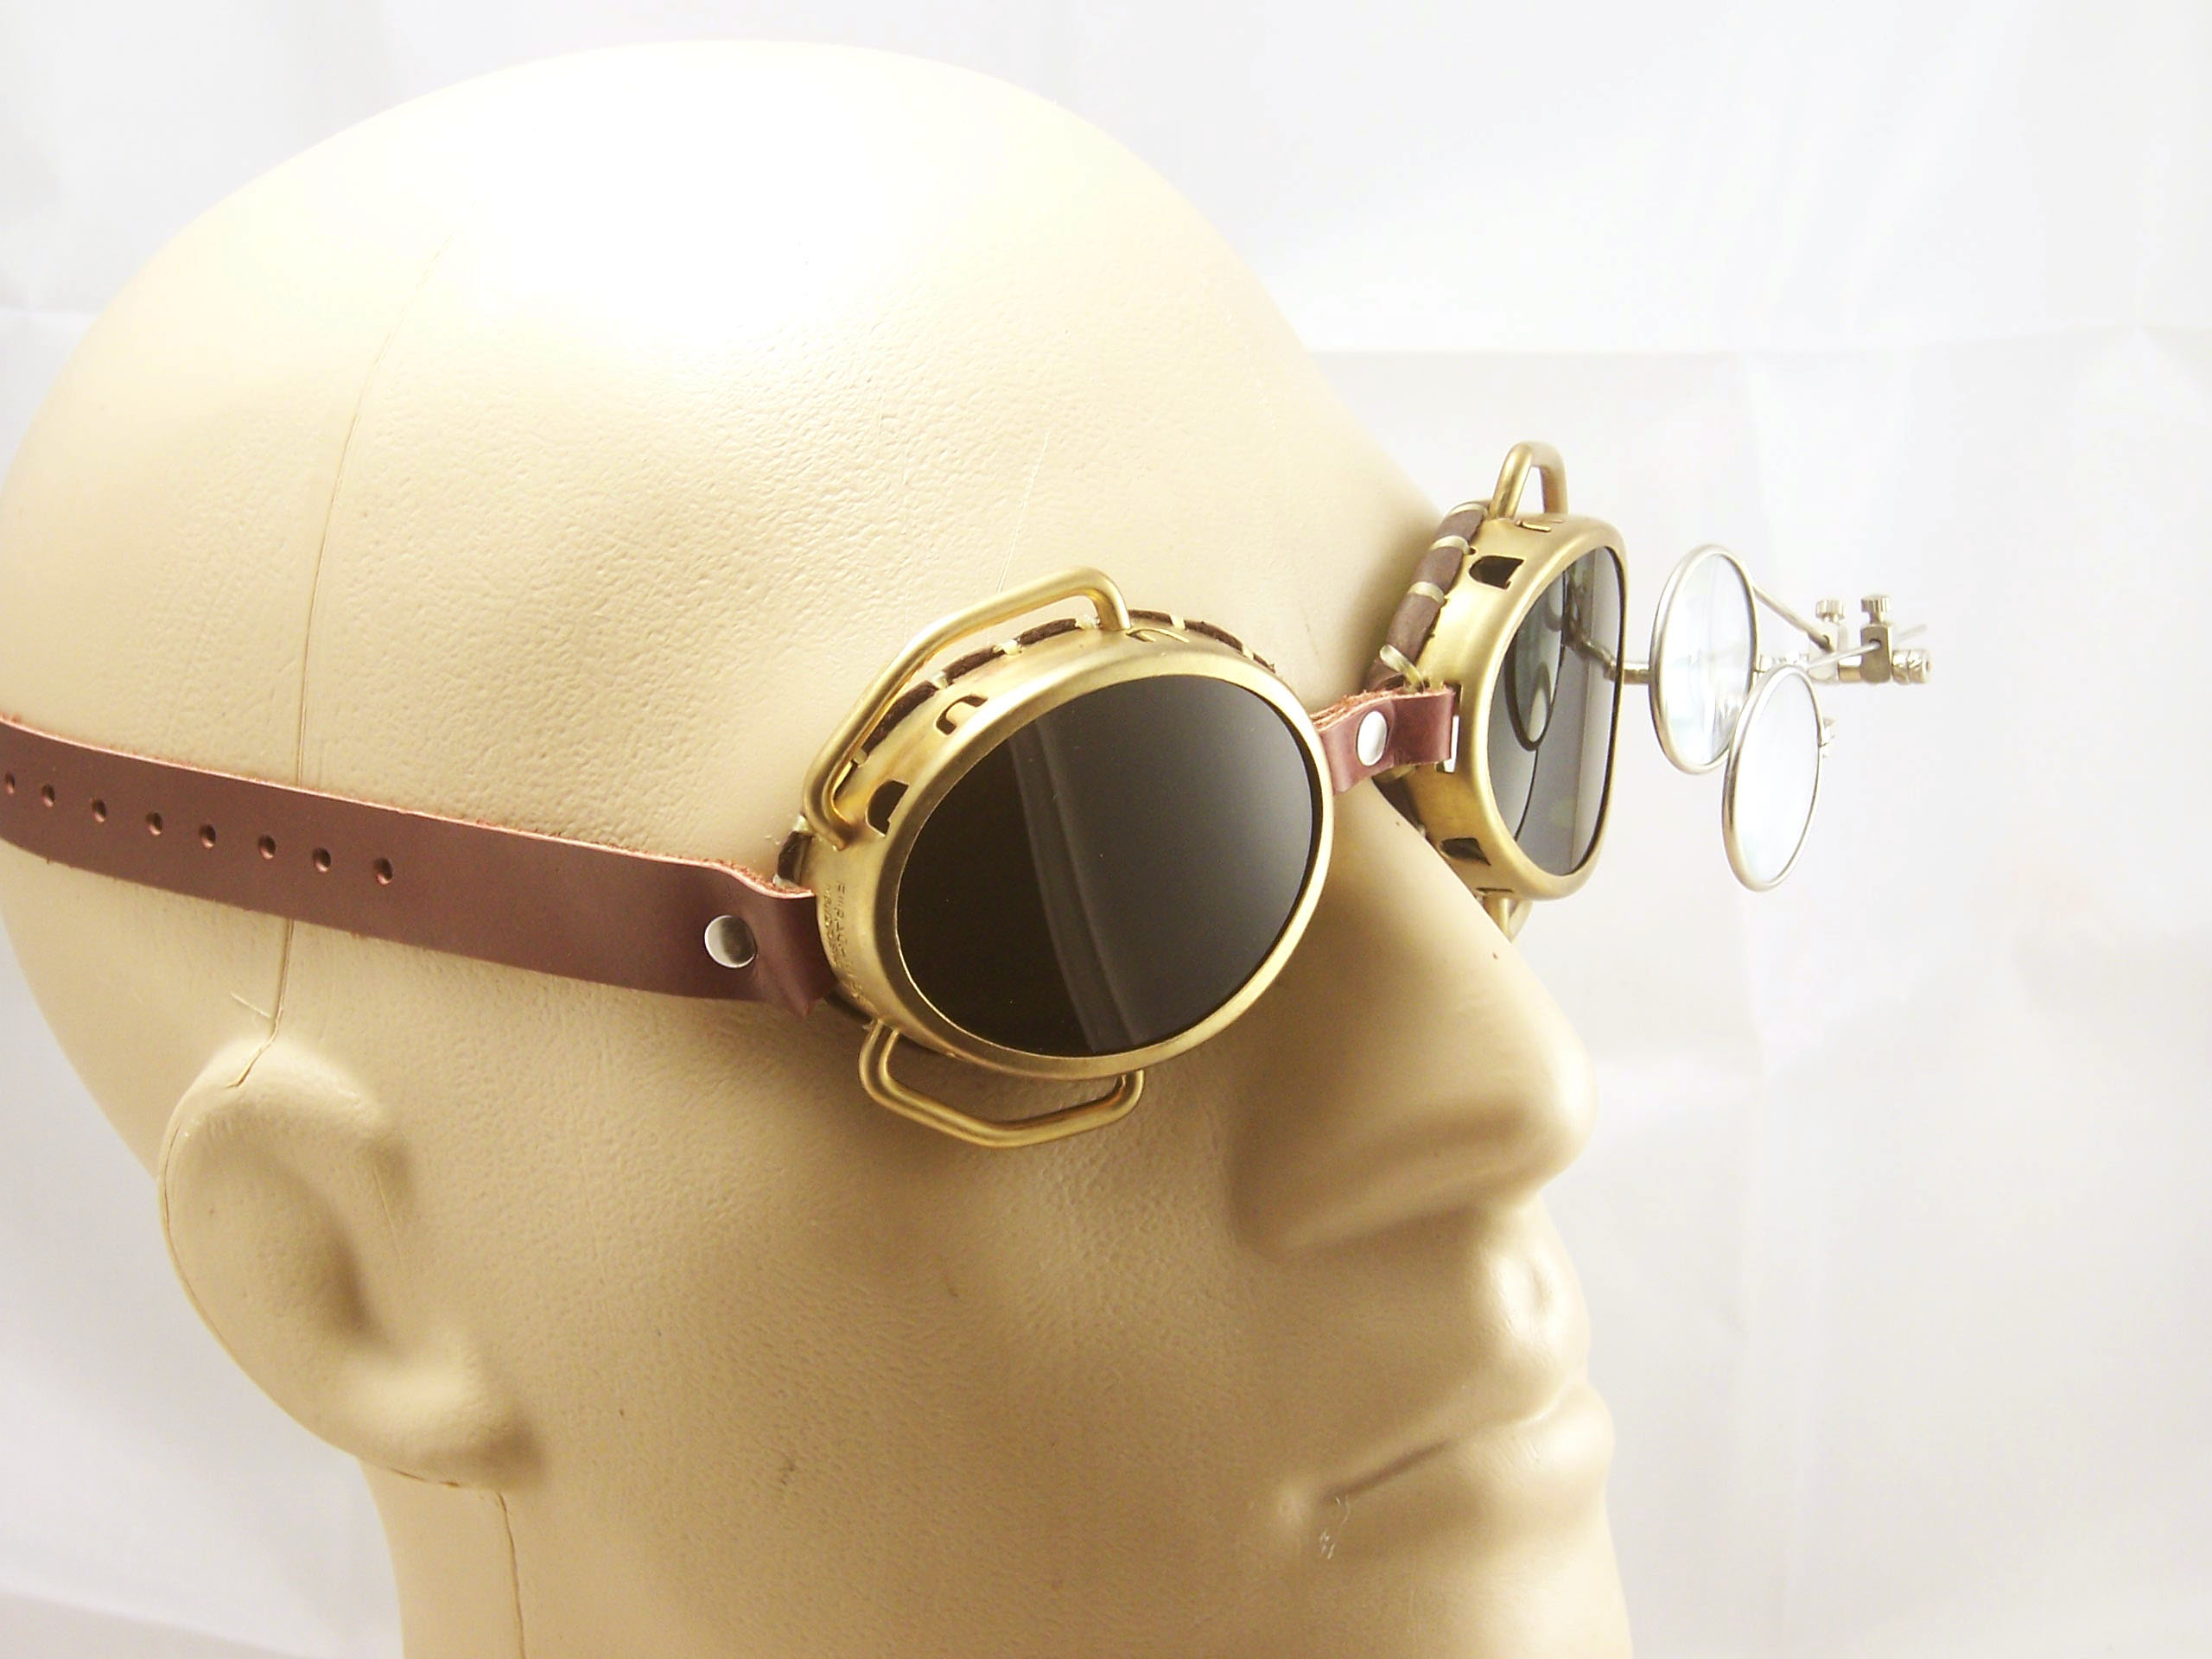 rebelsmarket_steampunk_goggles_solid_brass_with_flip_down_magnifiers_and_conduits_goggles_3.jpg